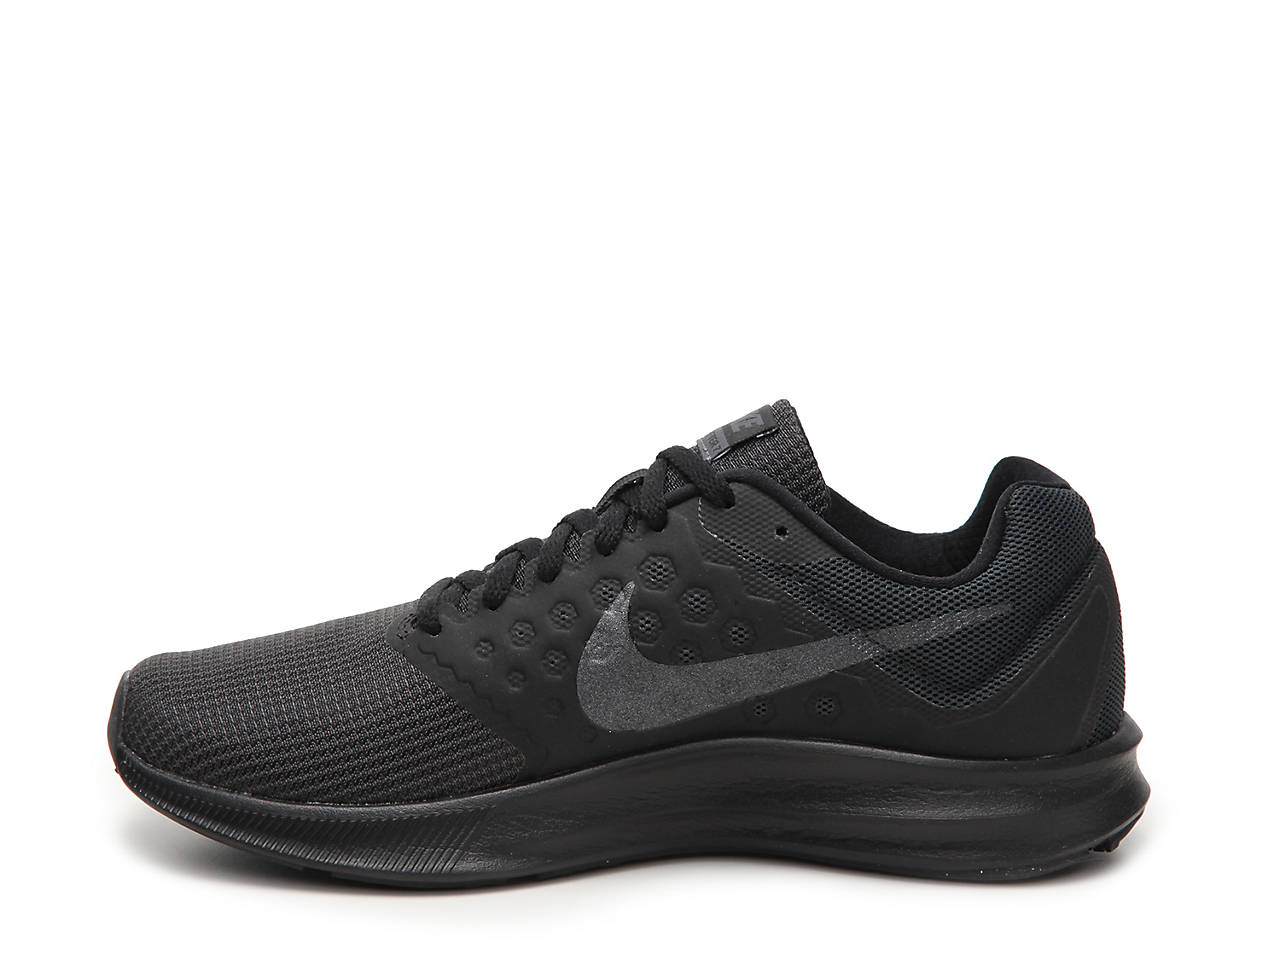 d427df50a4f Nike Downshifter 7 Lightweight Running Shoe - Women s Women s Shoes ...